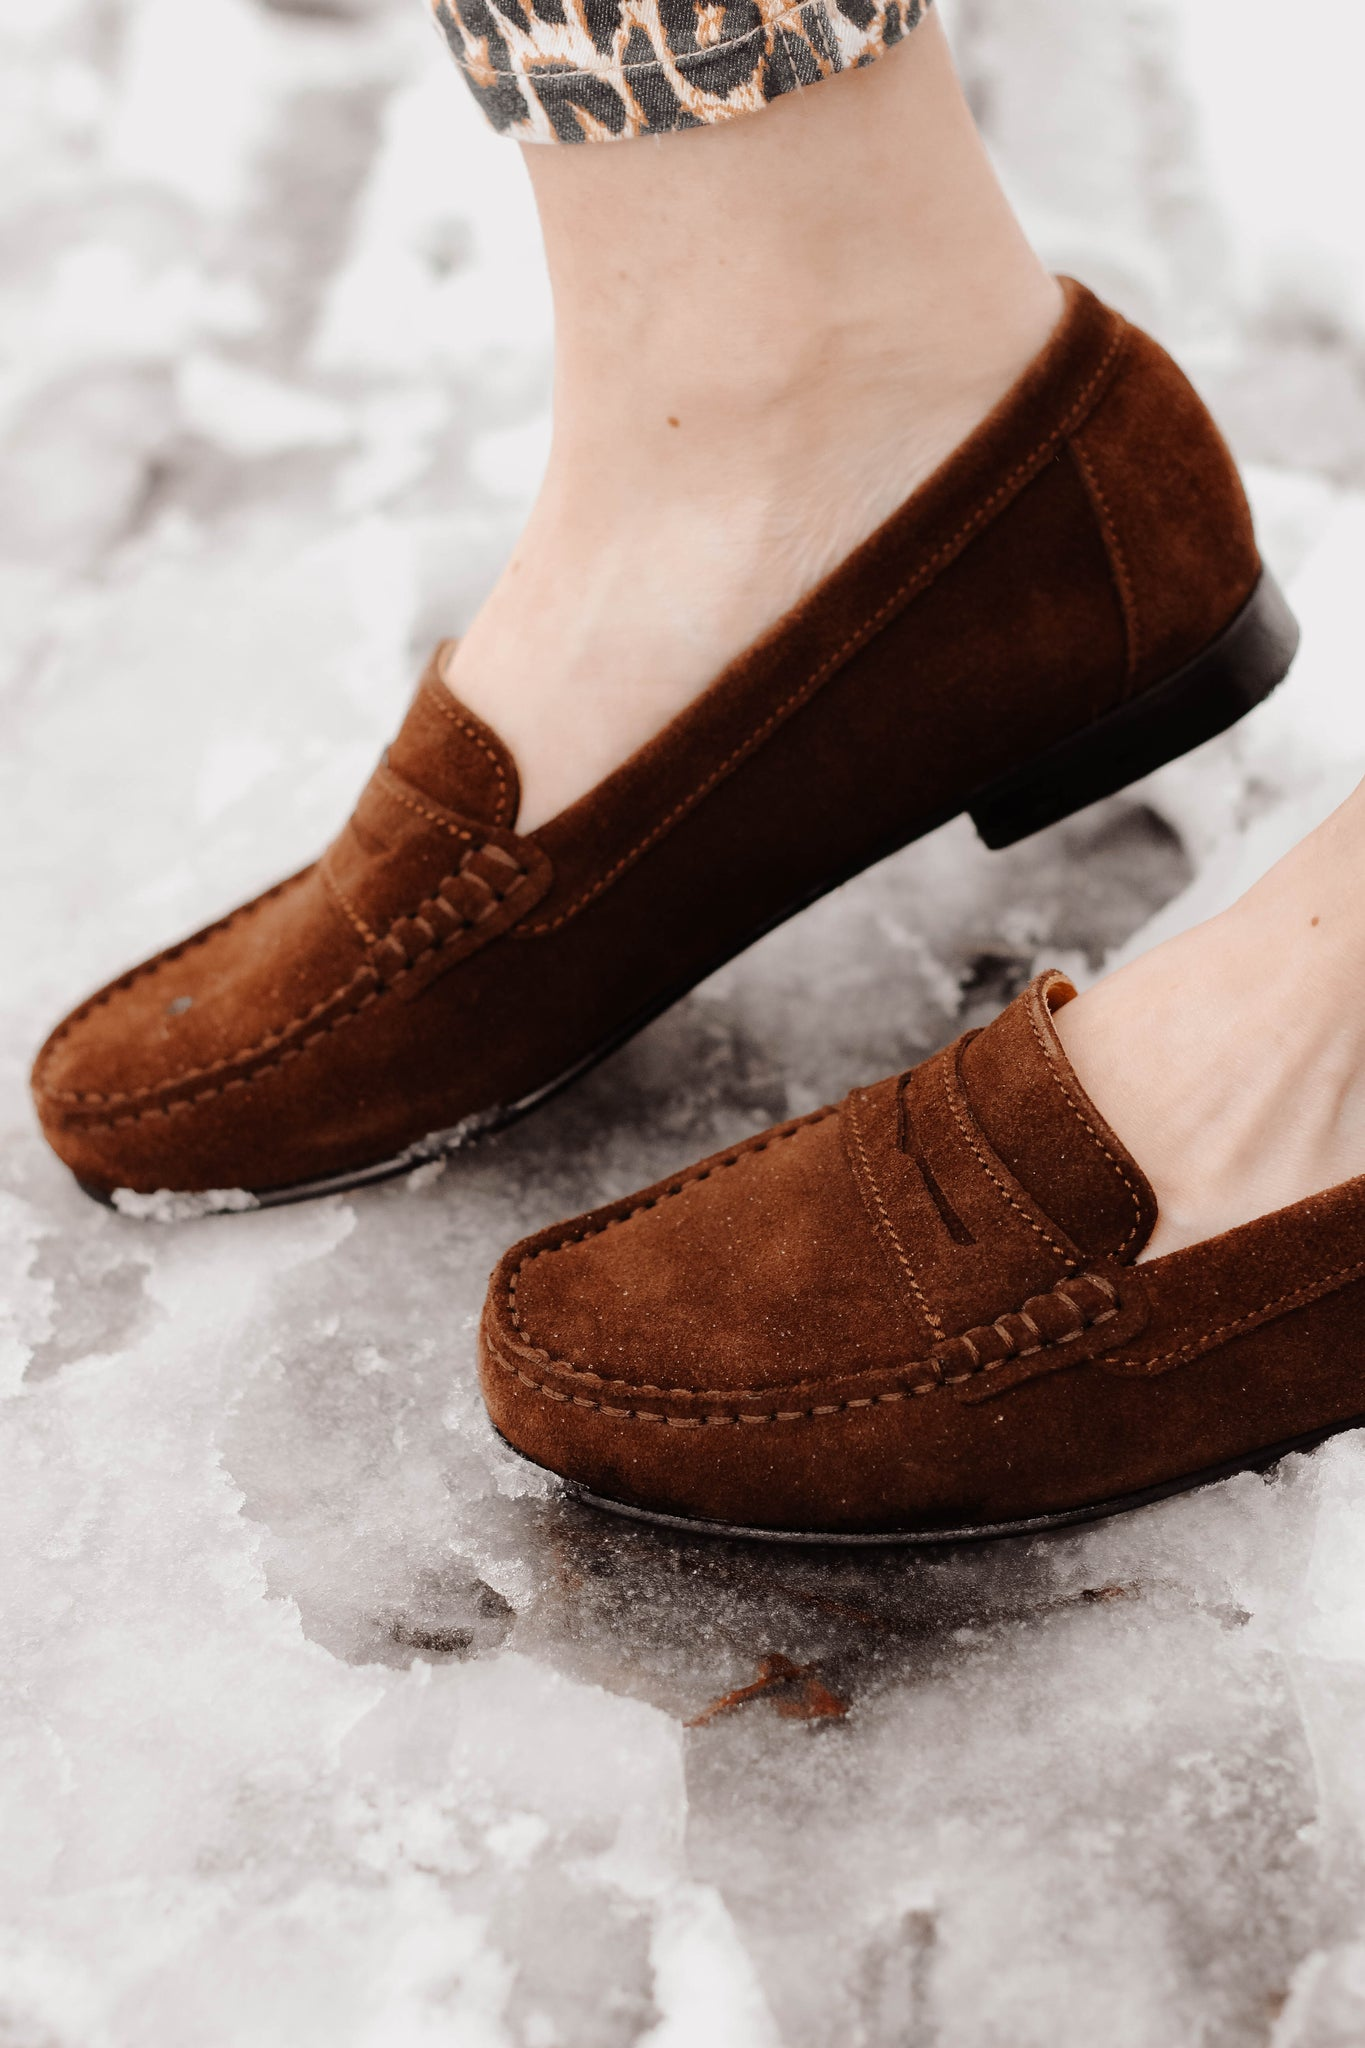 Hugs & Co. loafers